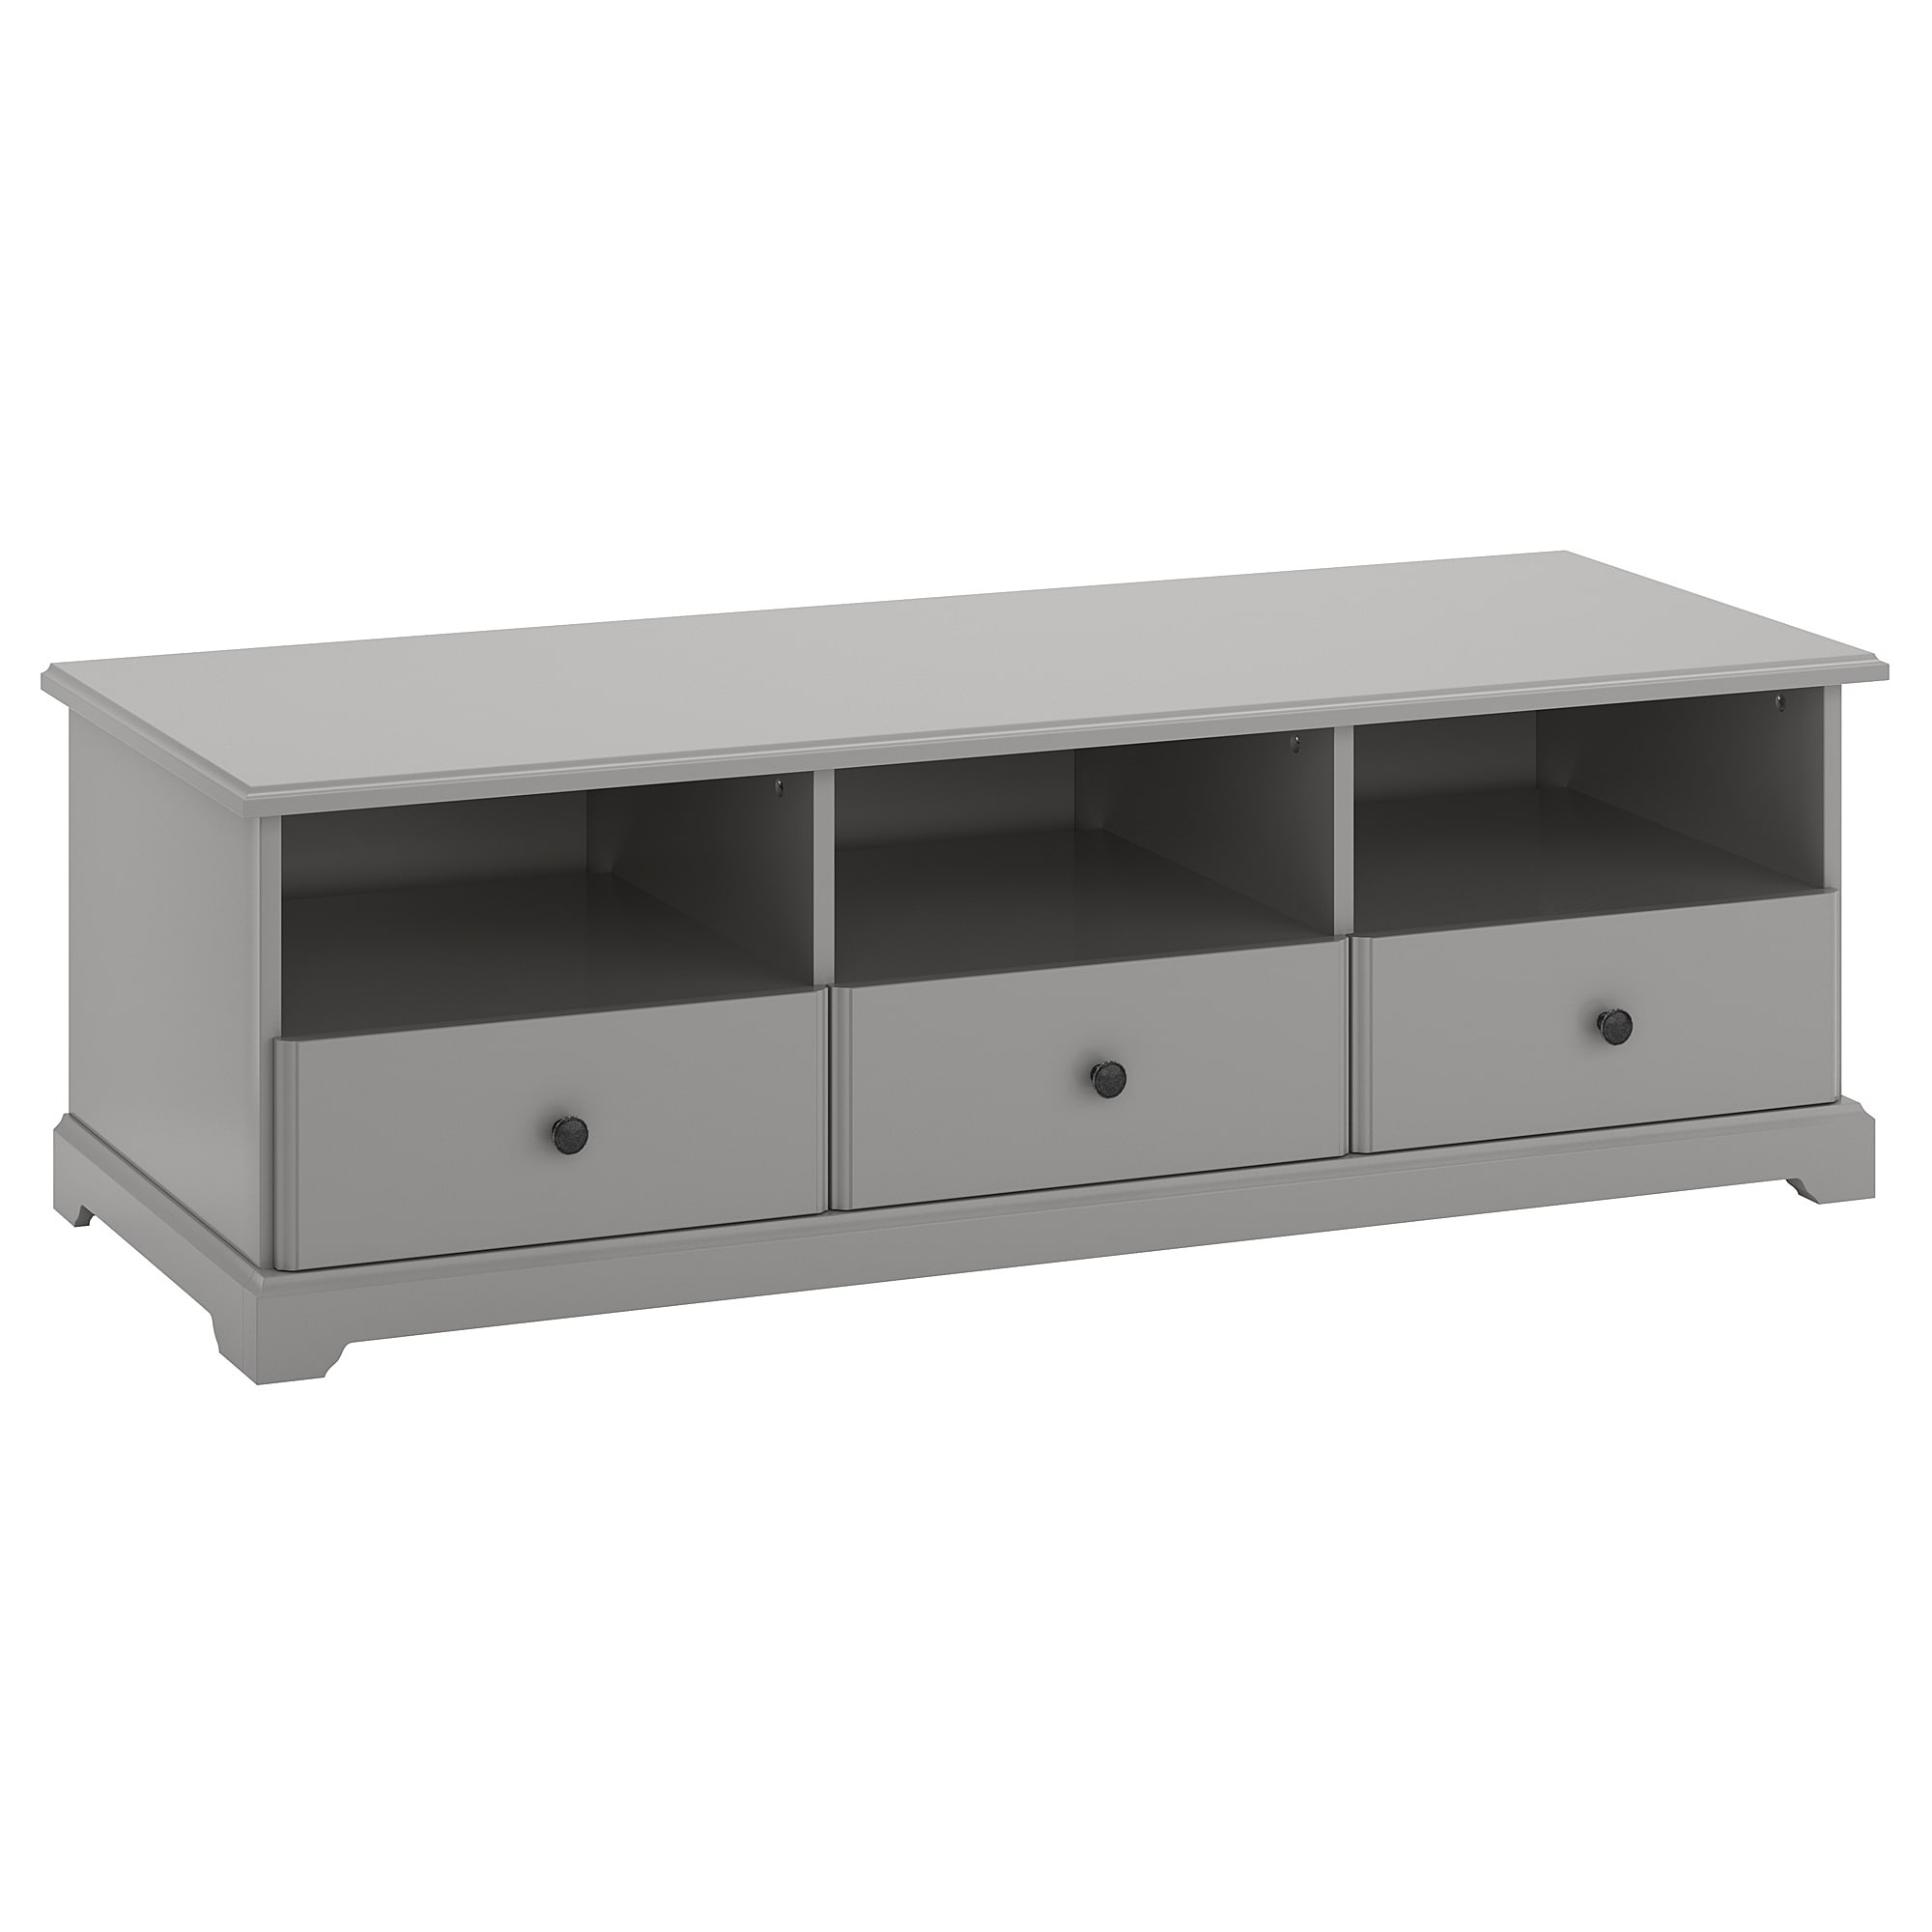 Famous Black Tv Cabinets With Drawers Pertaining To Liatorp Tv Bench Grey 145 X 49 X 45 Cm – Ikea (View 10 of 20)